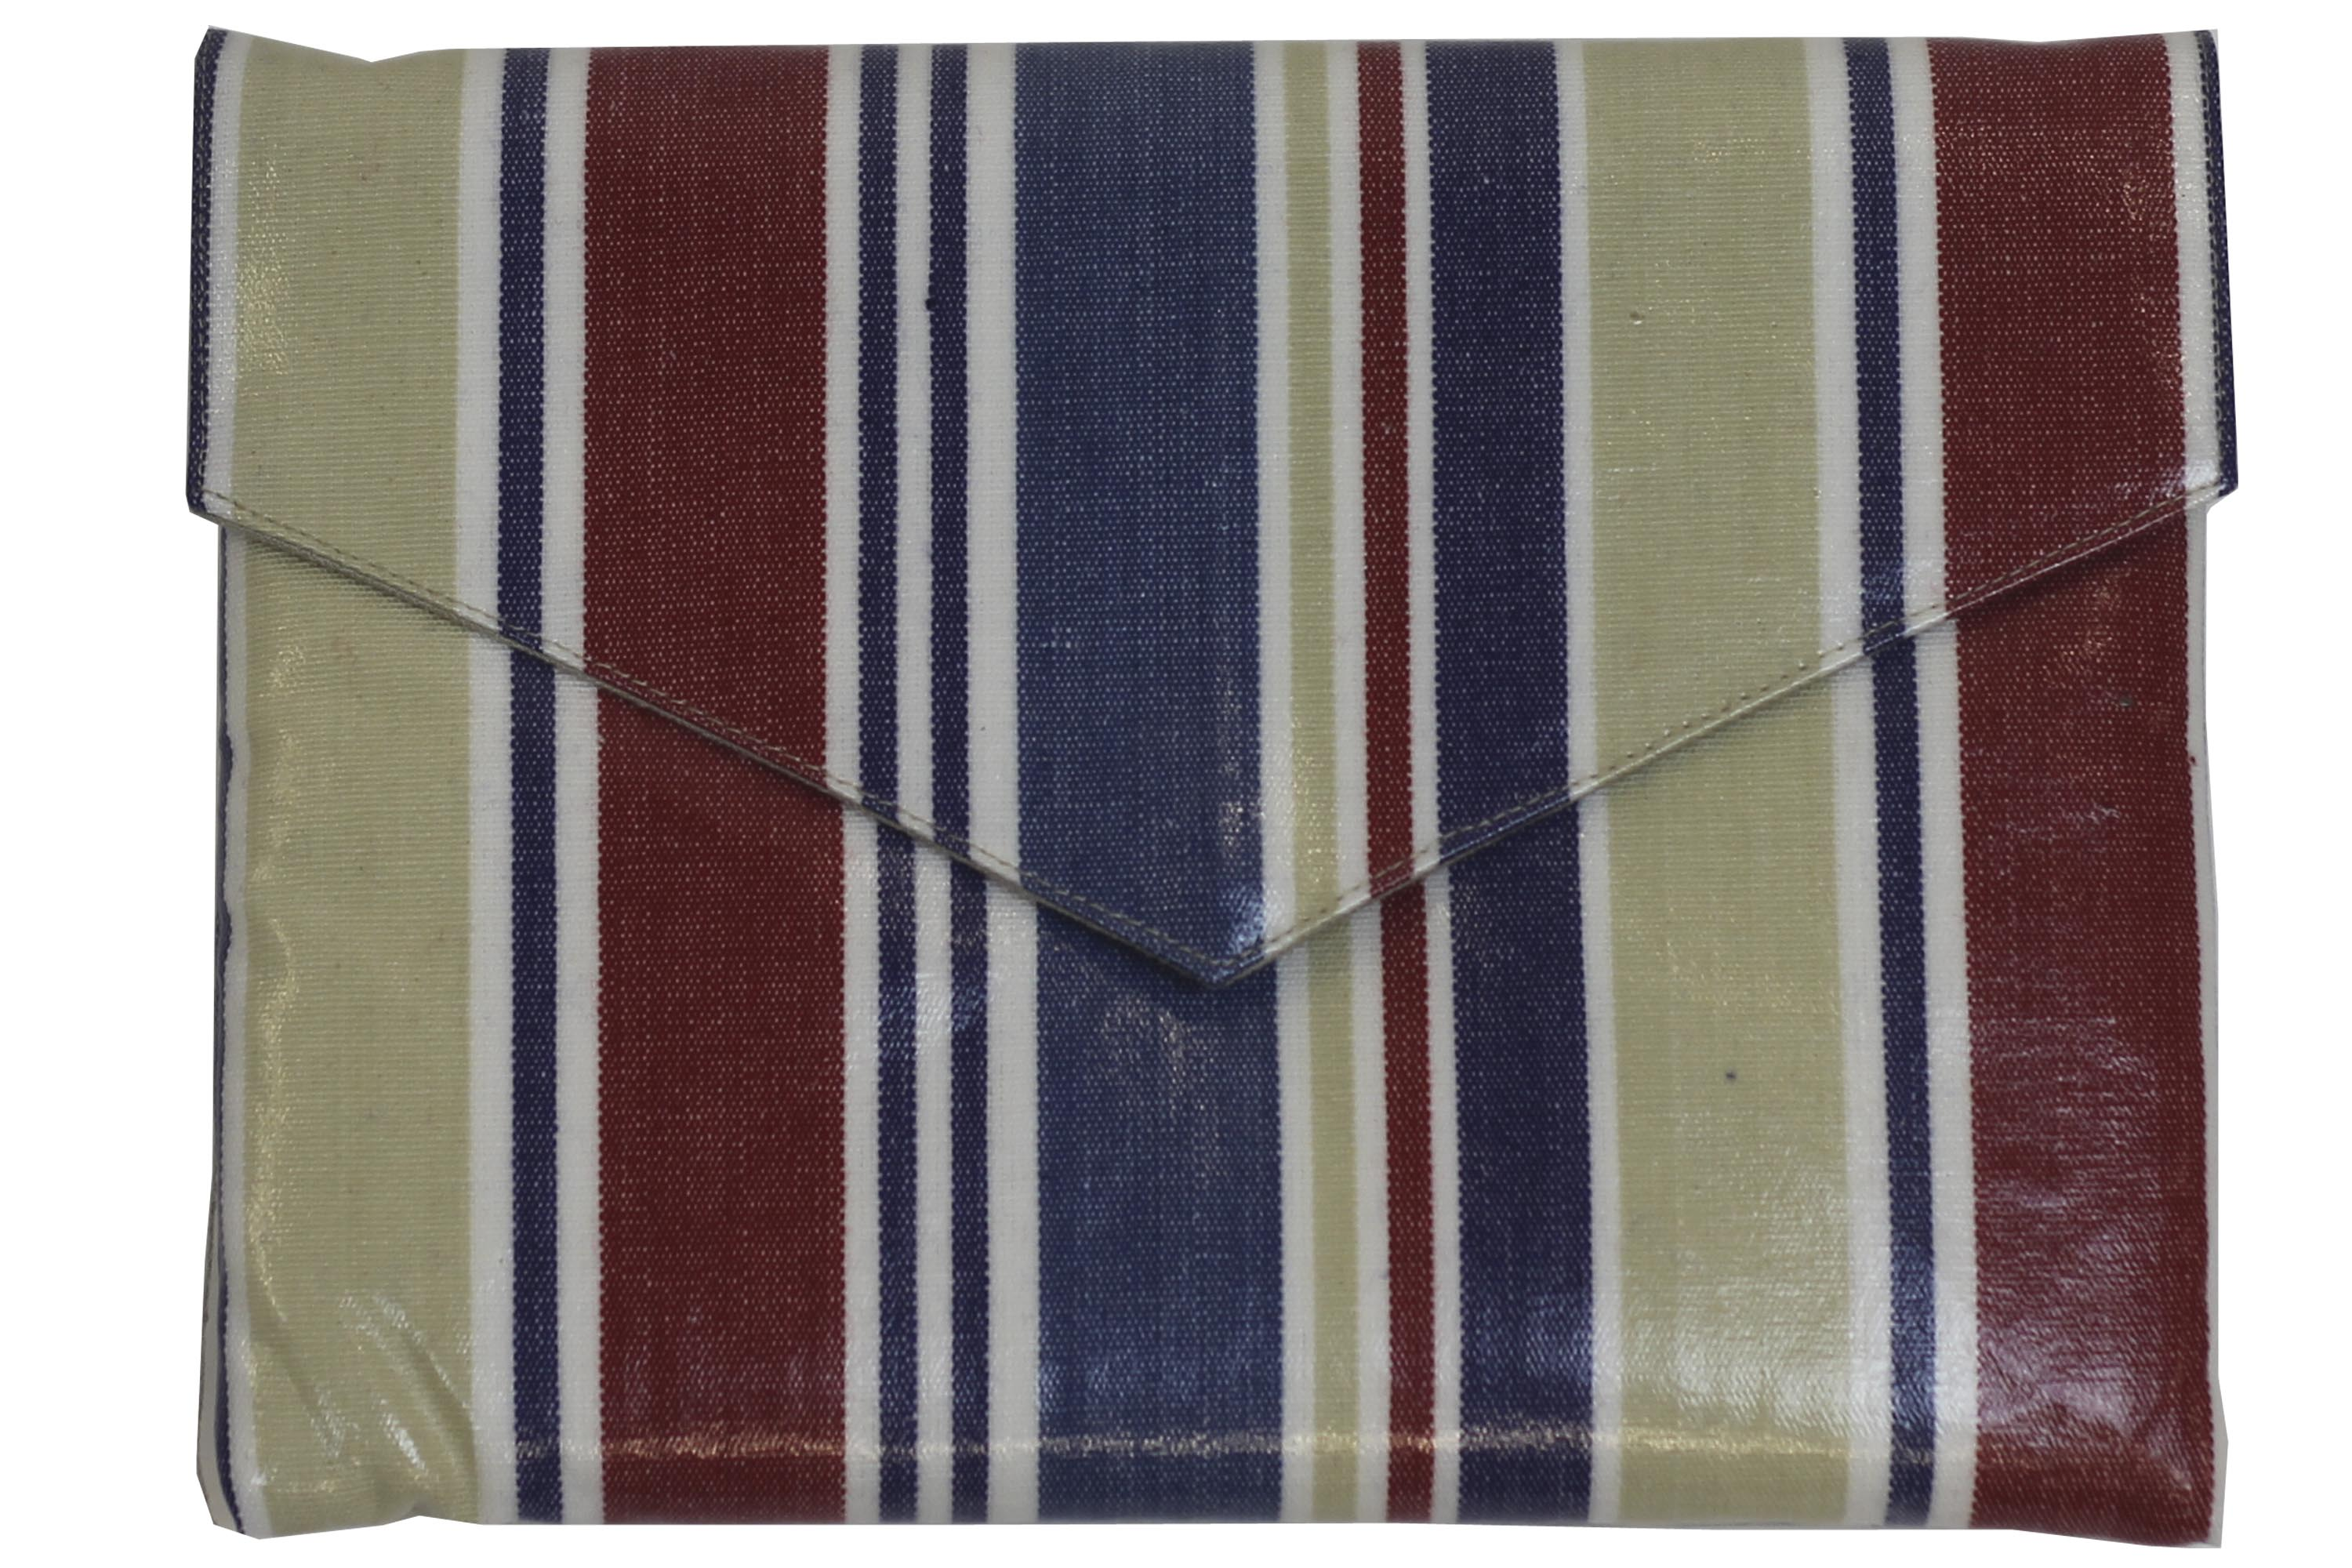 Small PVC Clutch Bags - Red, Blue, Beige and White Stripe iPad Mini Bag